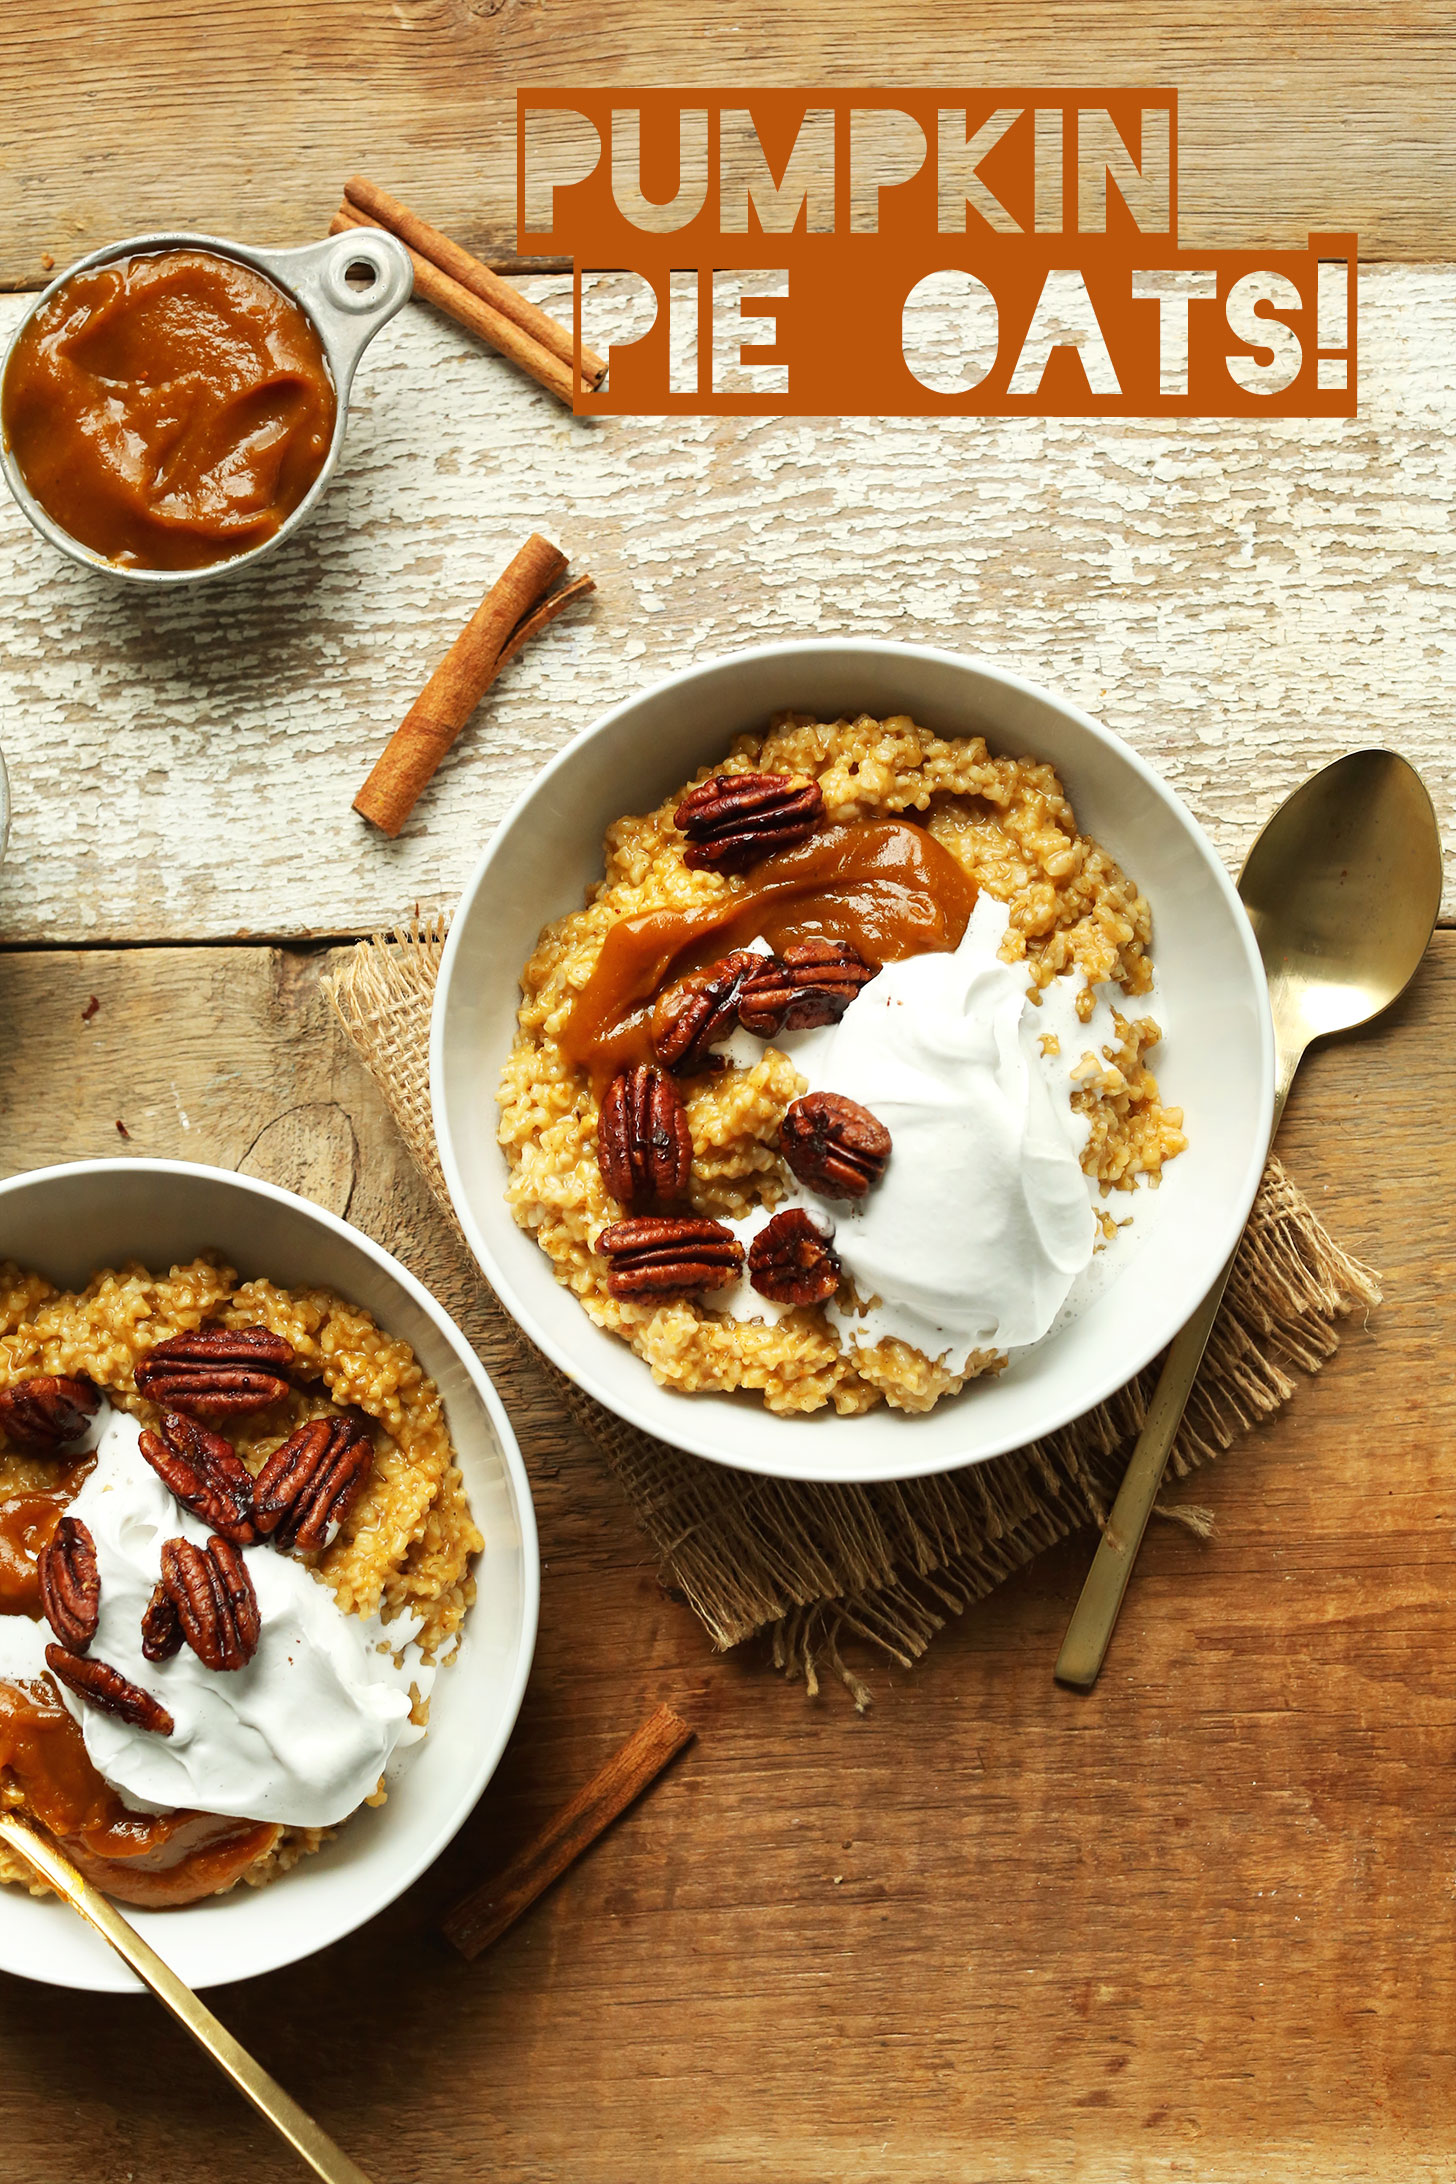 Bowls of Pumpkin Pie Oats for an incredible gluten-free vegan fall breakfast